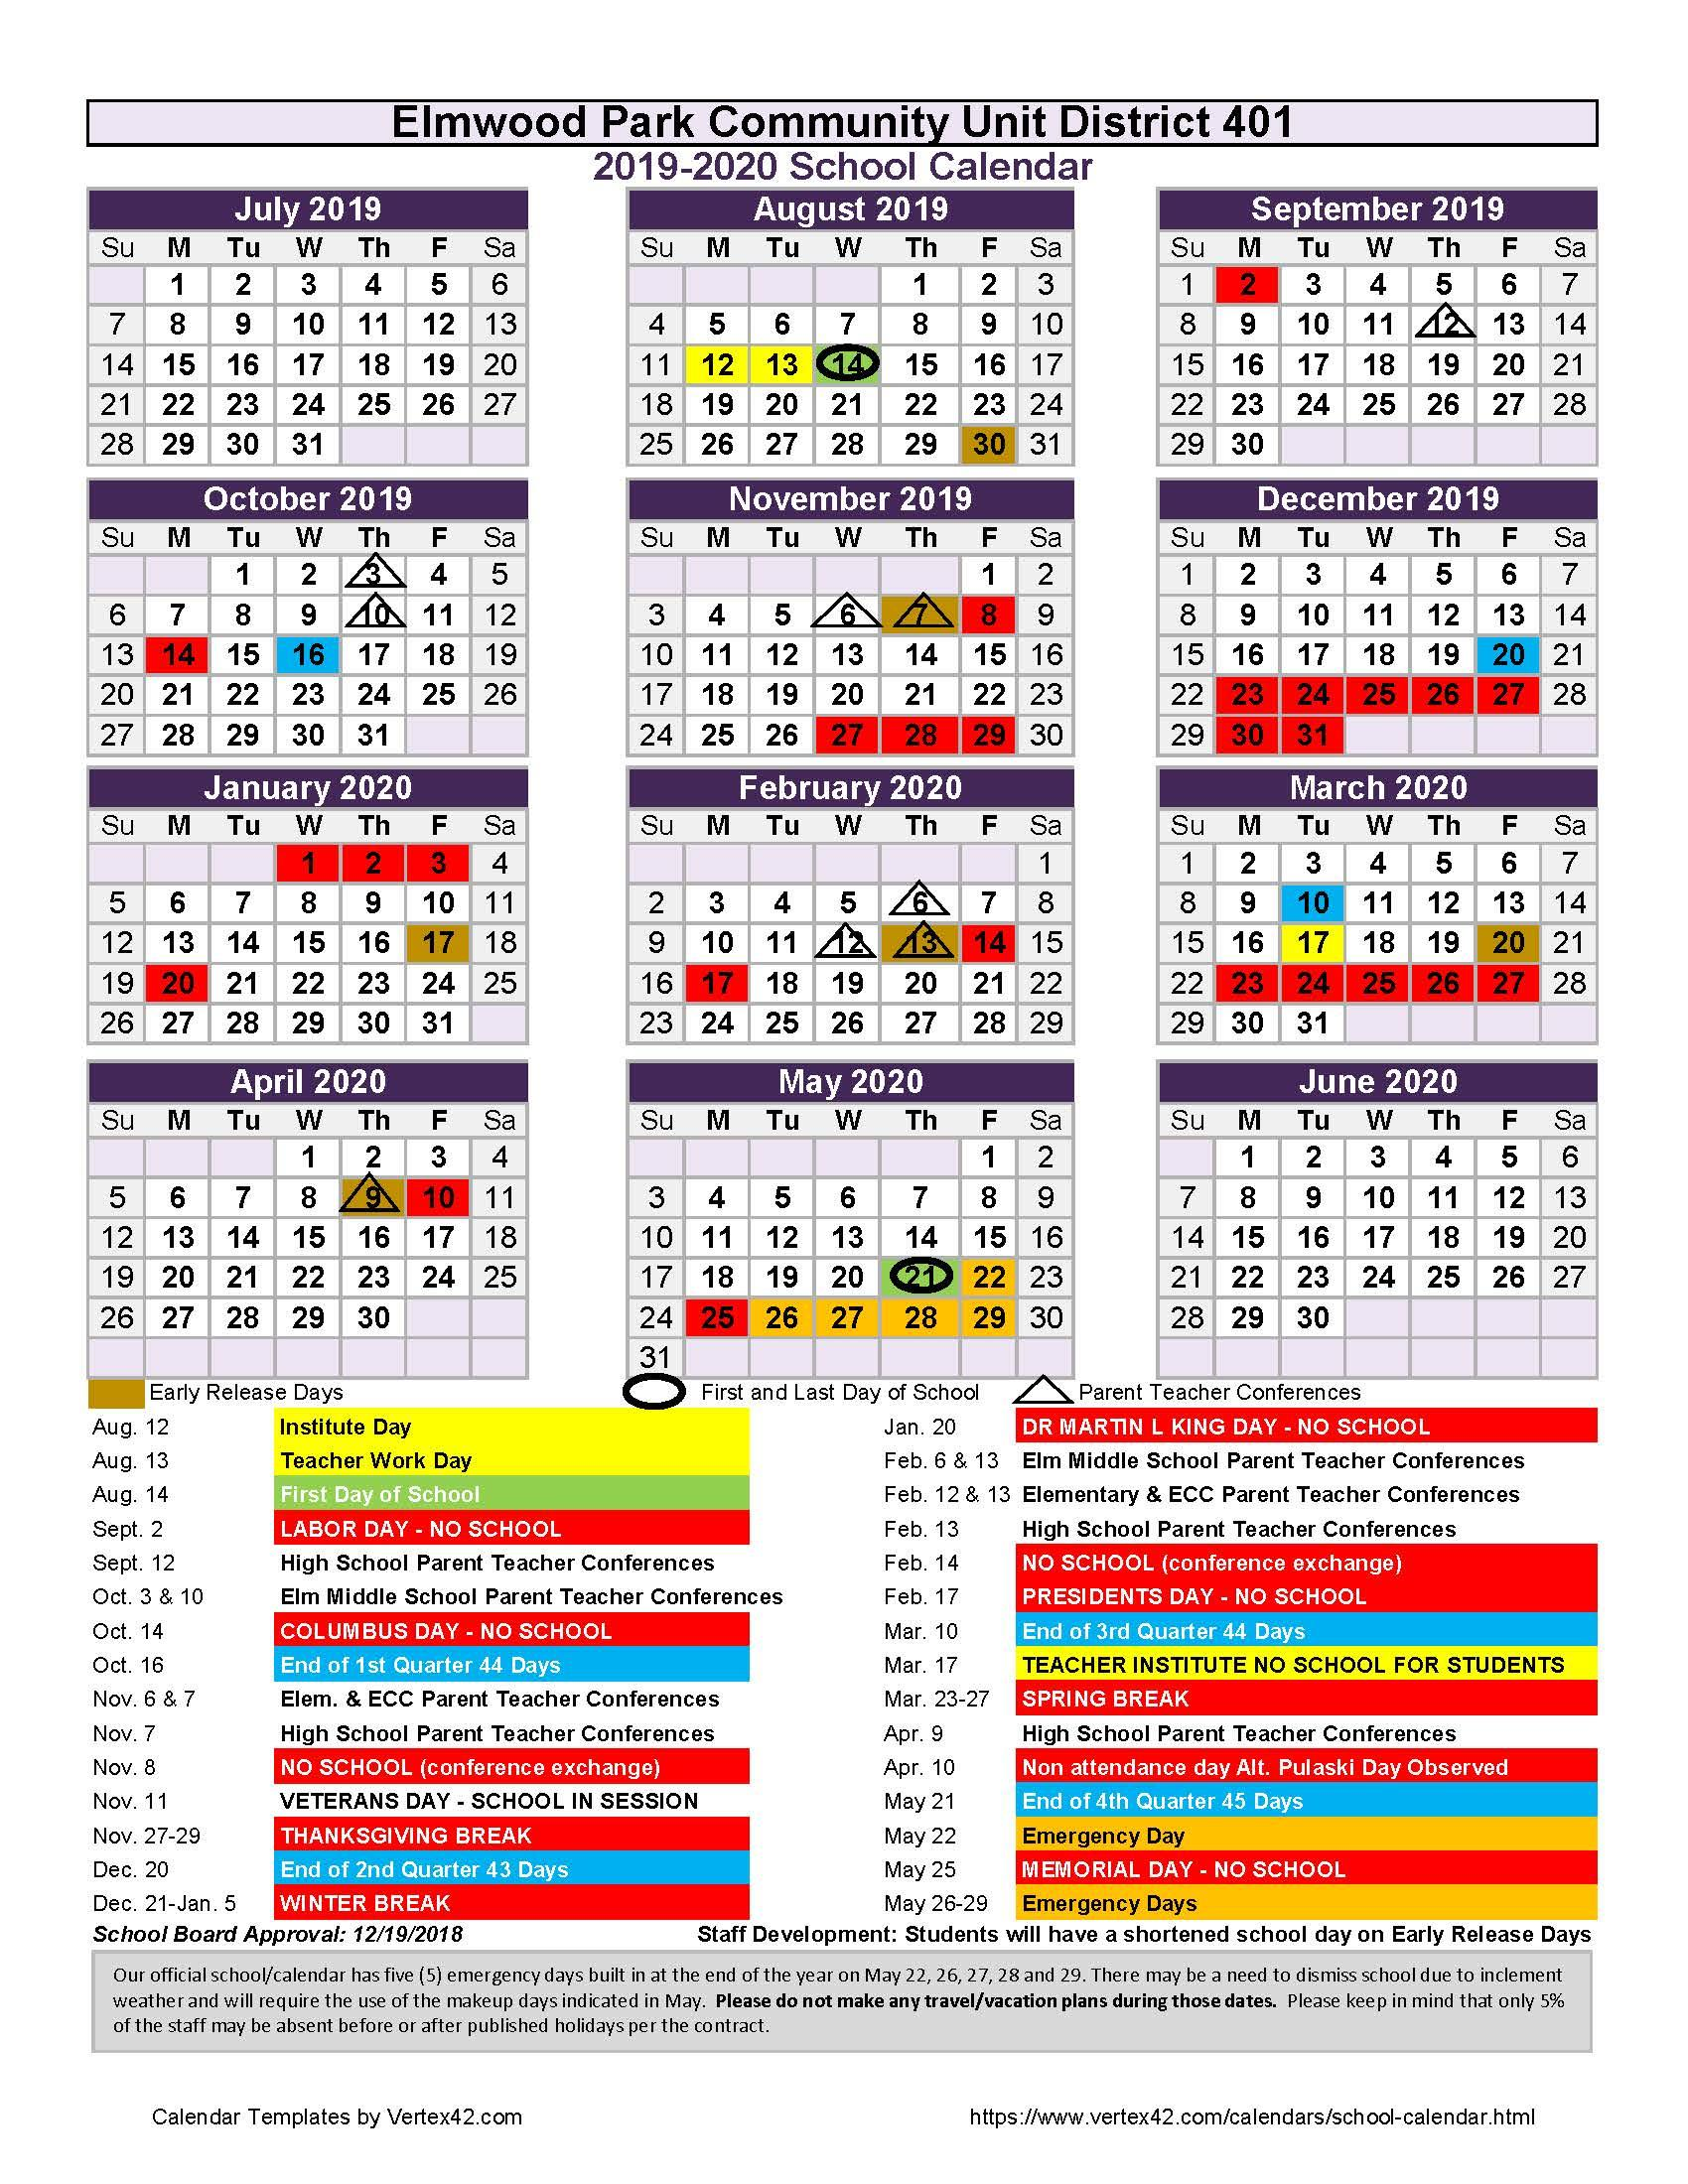 2019-20 official school calendar for District 401